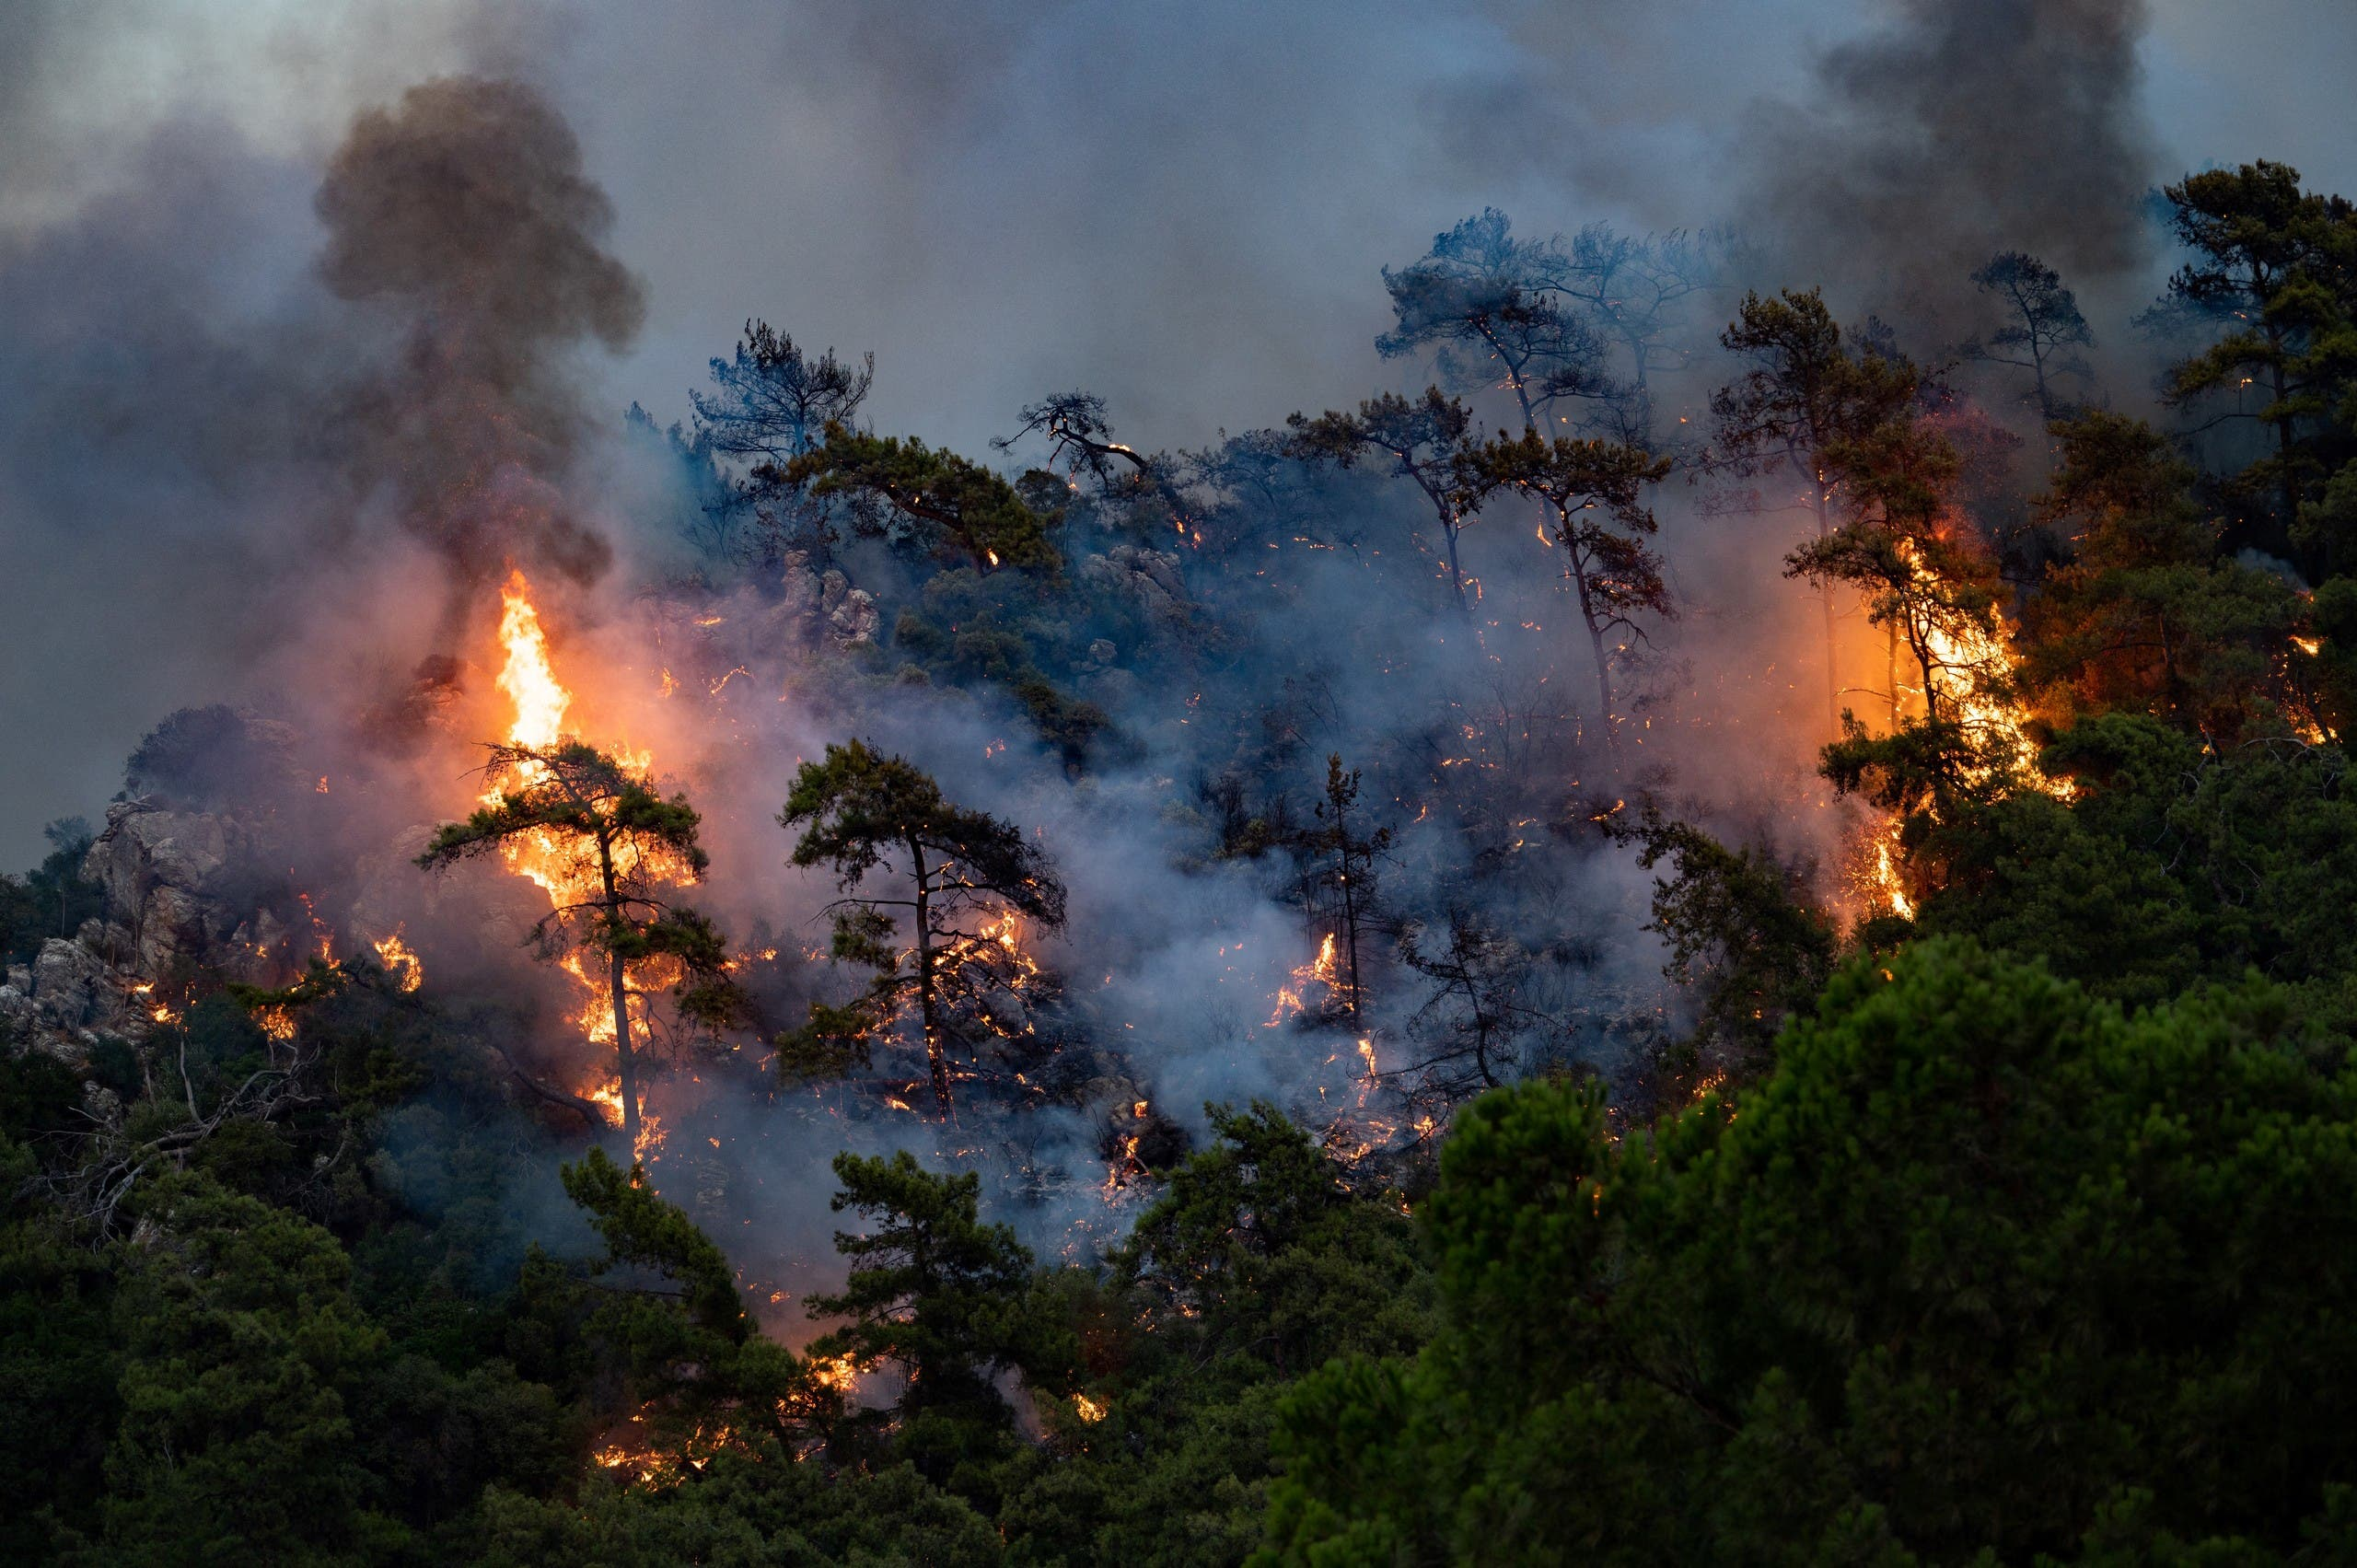 A wildfire burn trees on August 2, 2021 in Mugla, Marmaris district, as the European Union sent help to Turkey and volunteers joined firefighters in battling a week of violent blazes. (AFP)